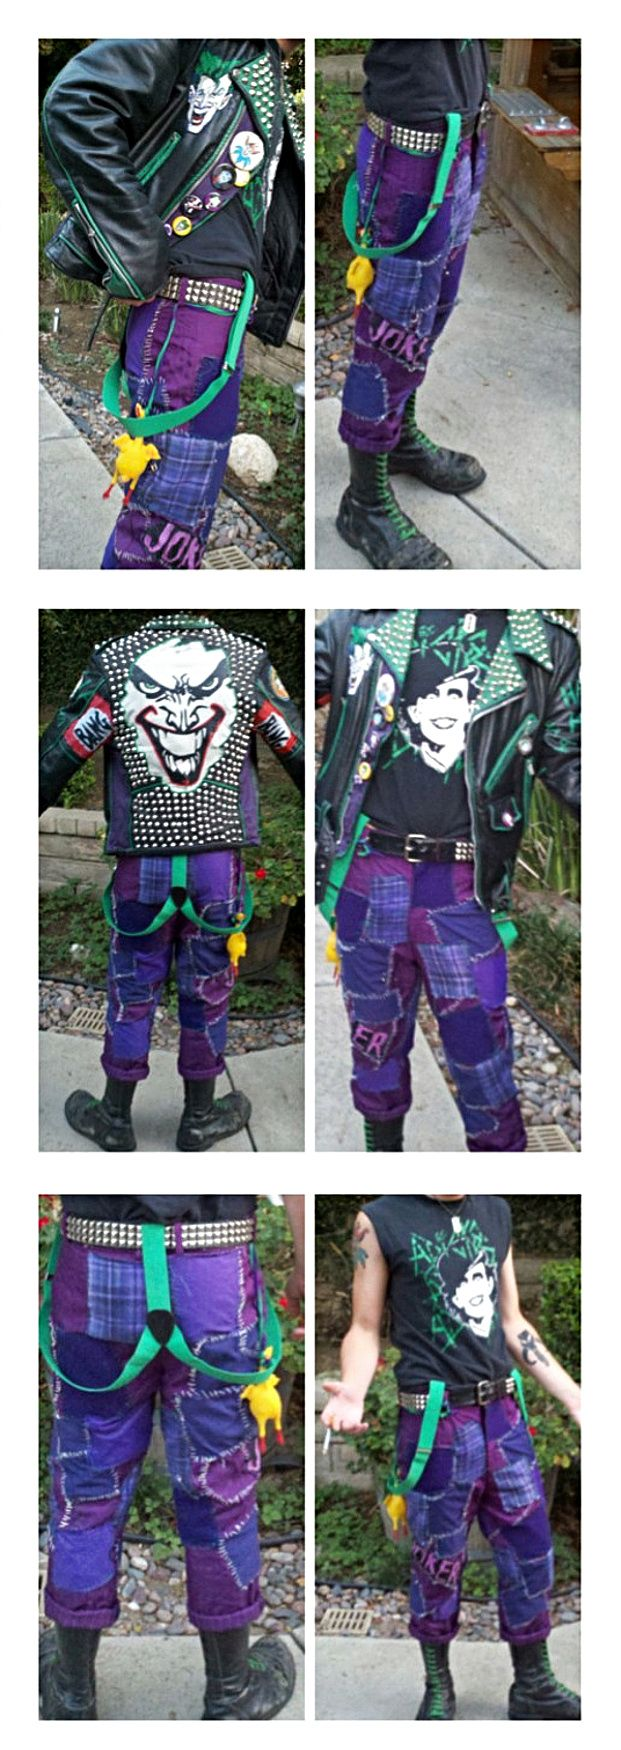 Punk Joker outfit - I can't even decide which board to pin this to